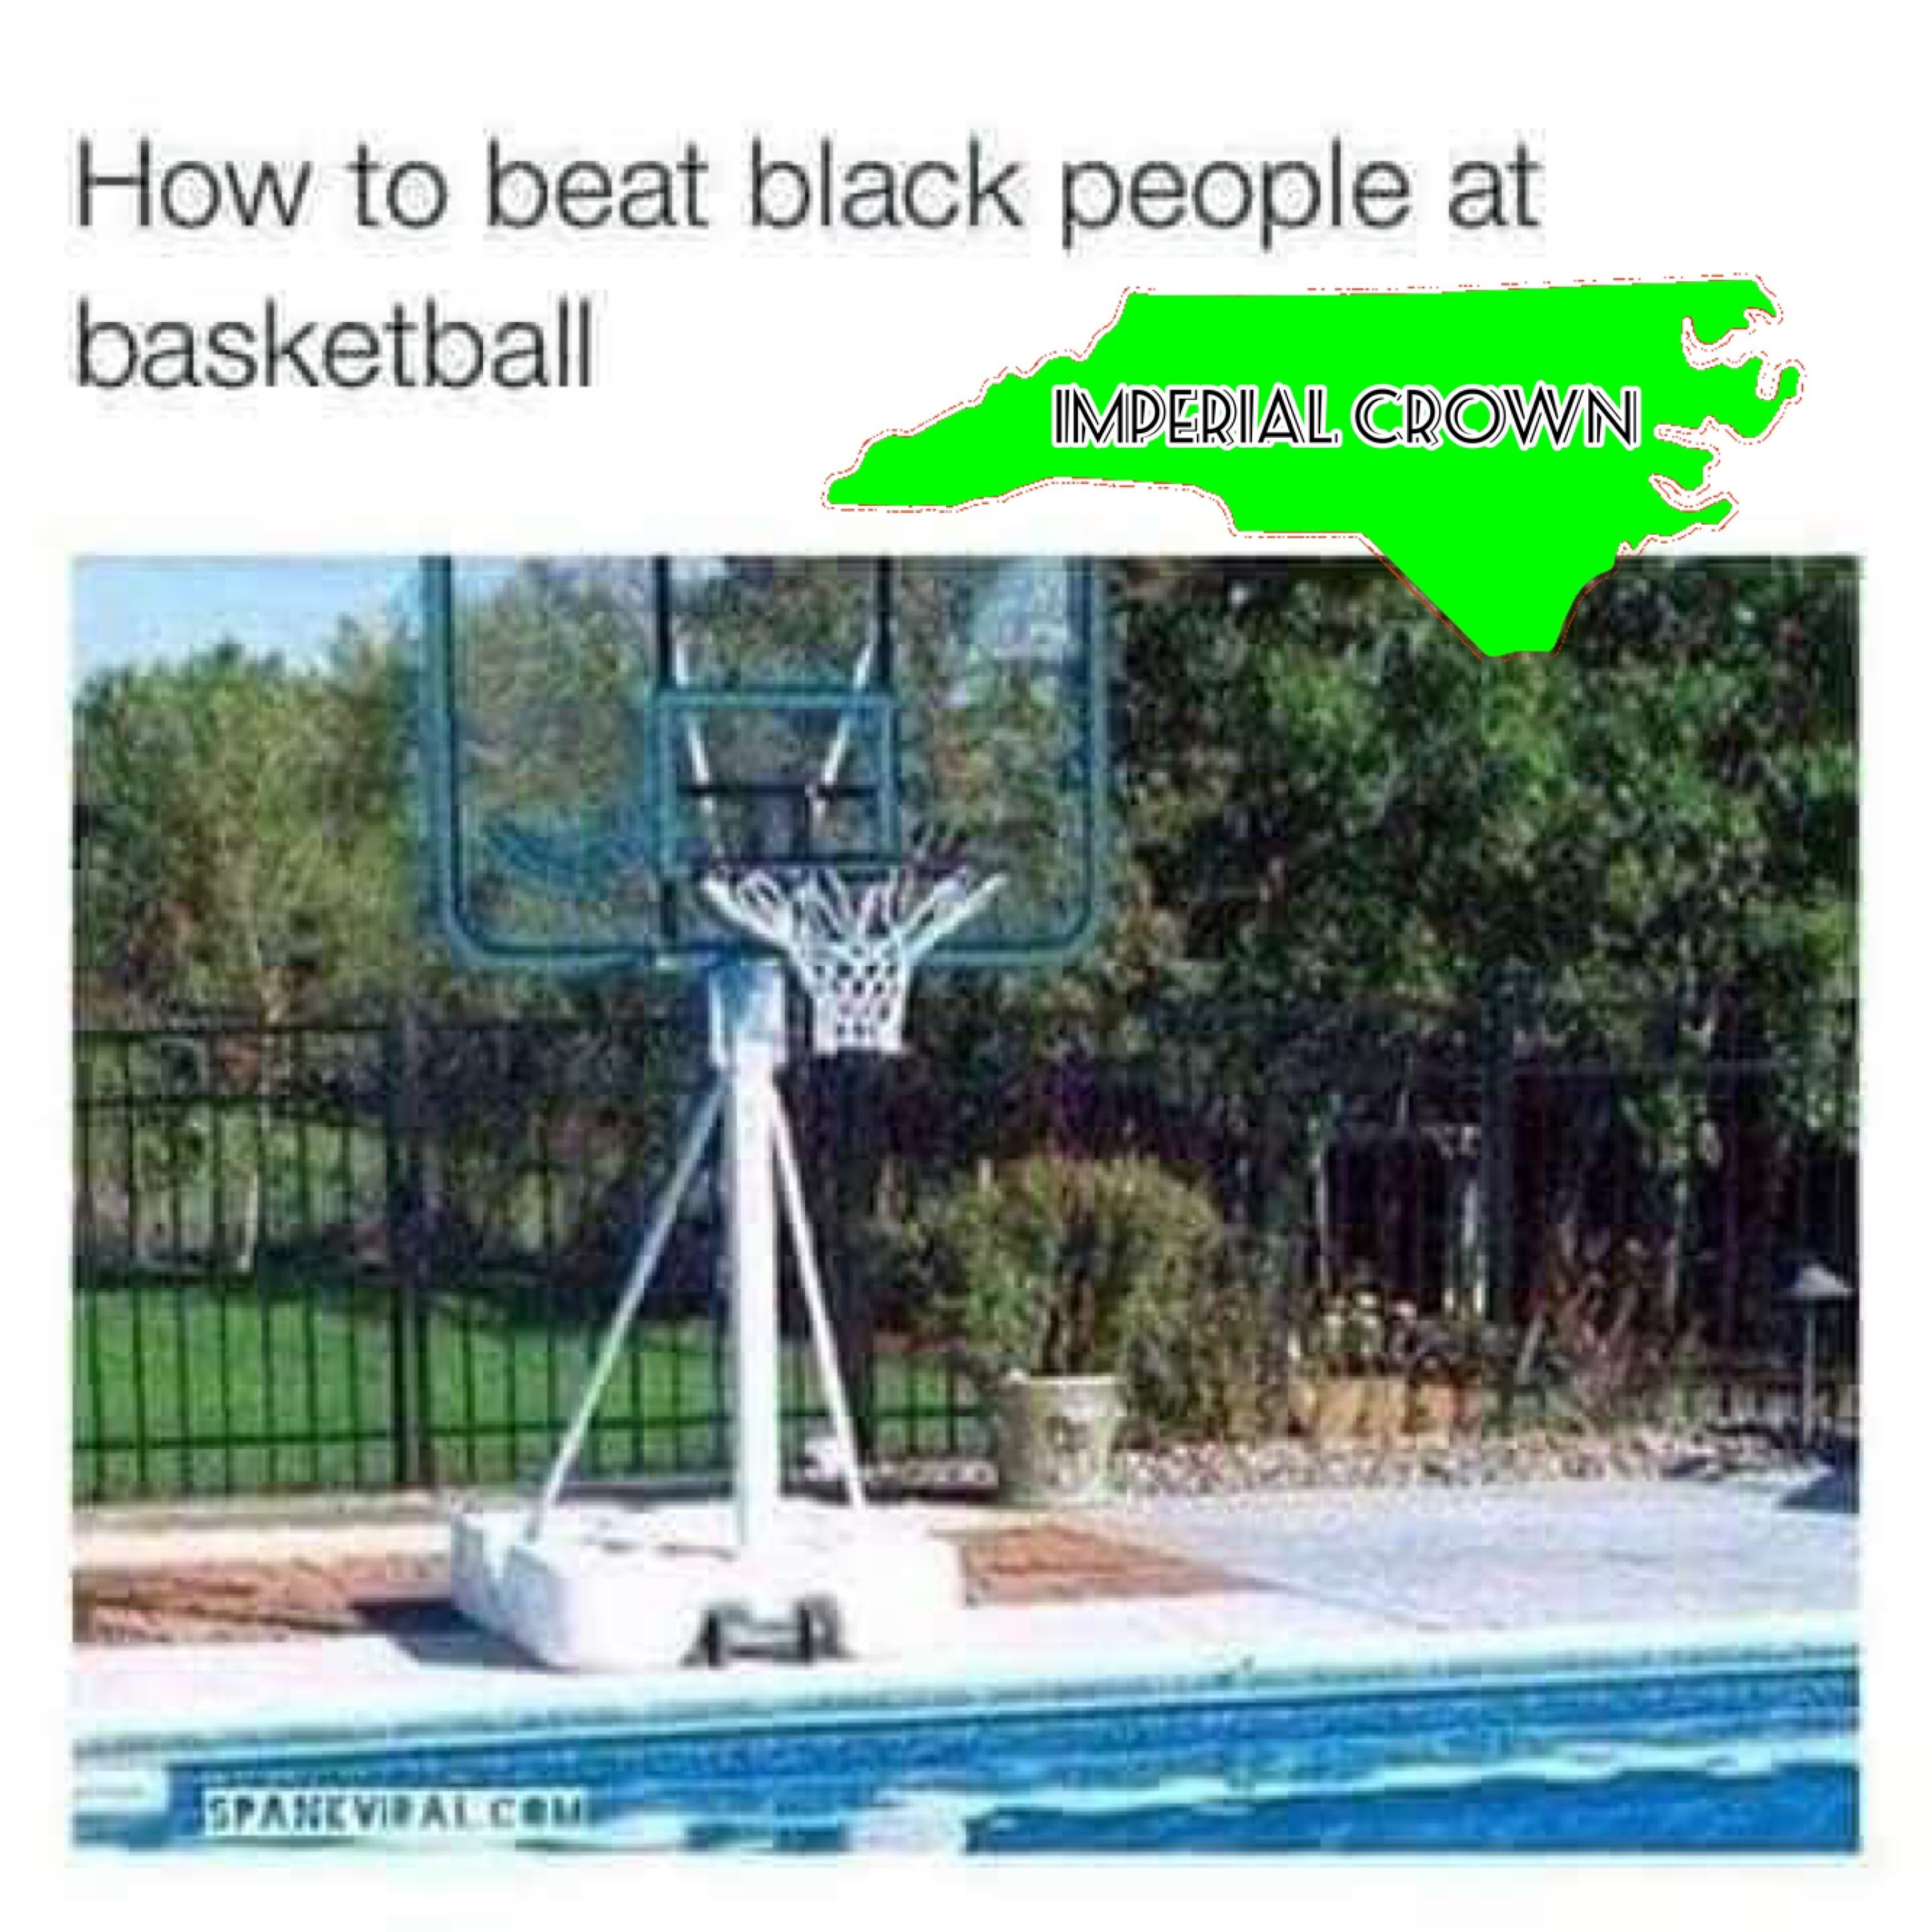 How to beat black people at basketball….